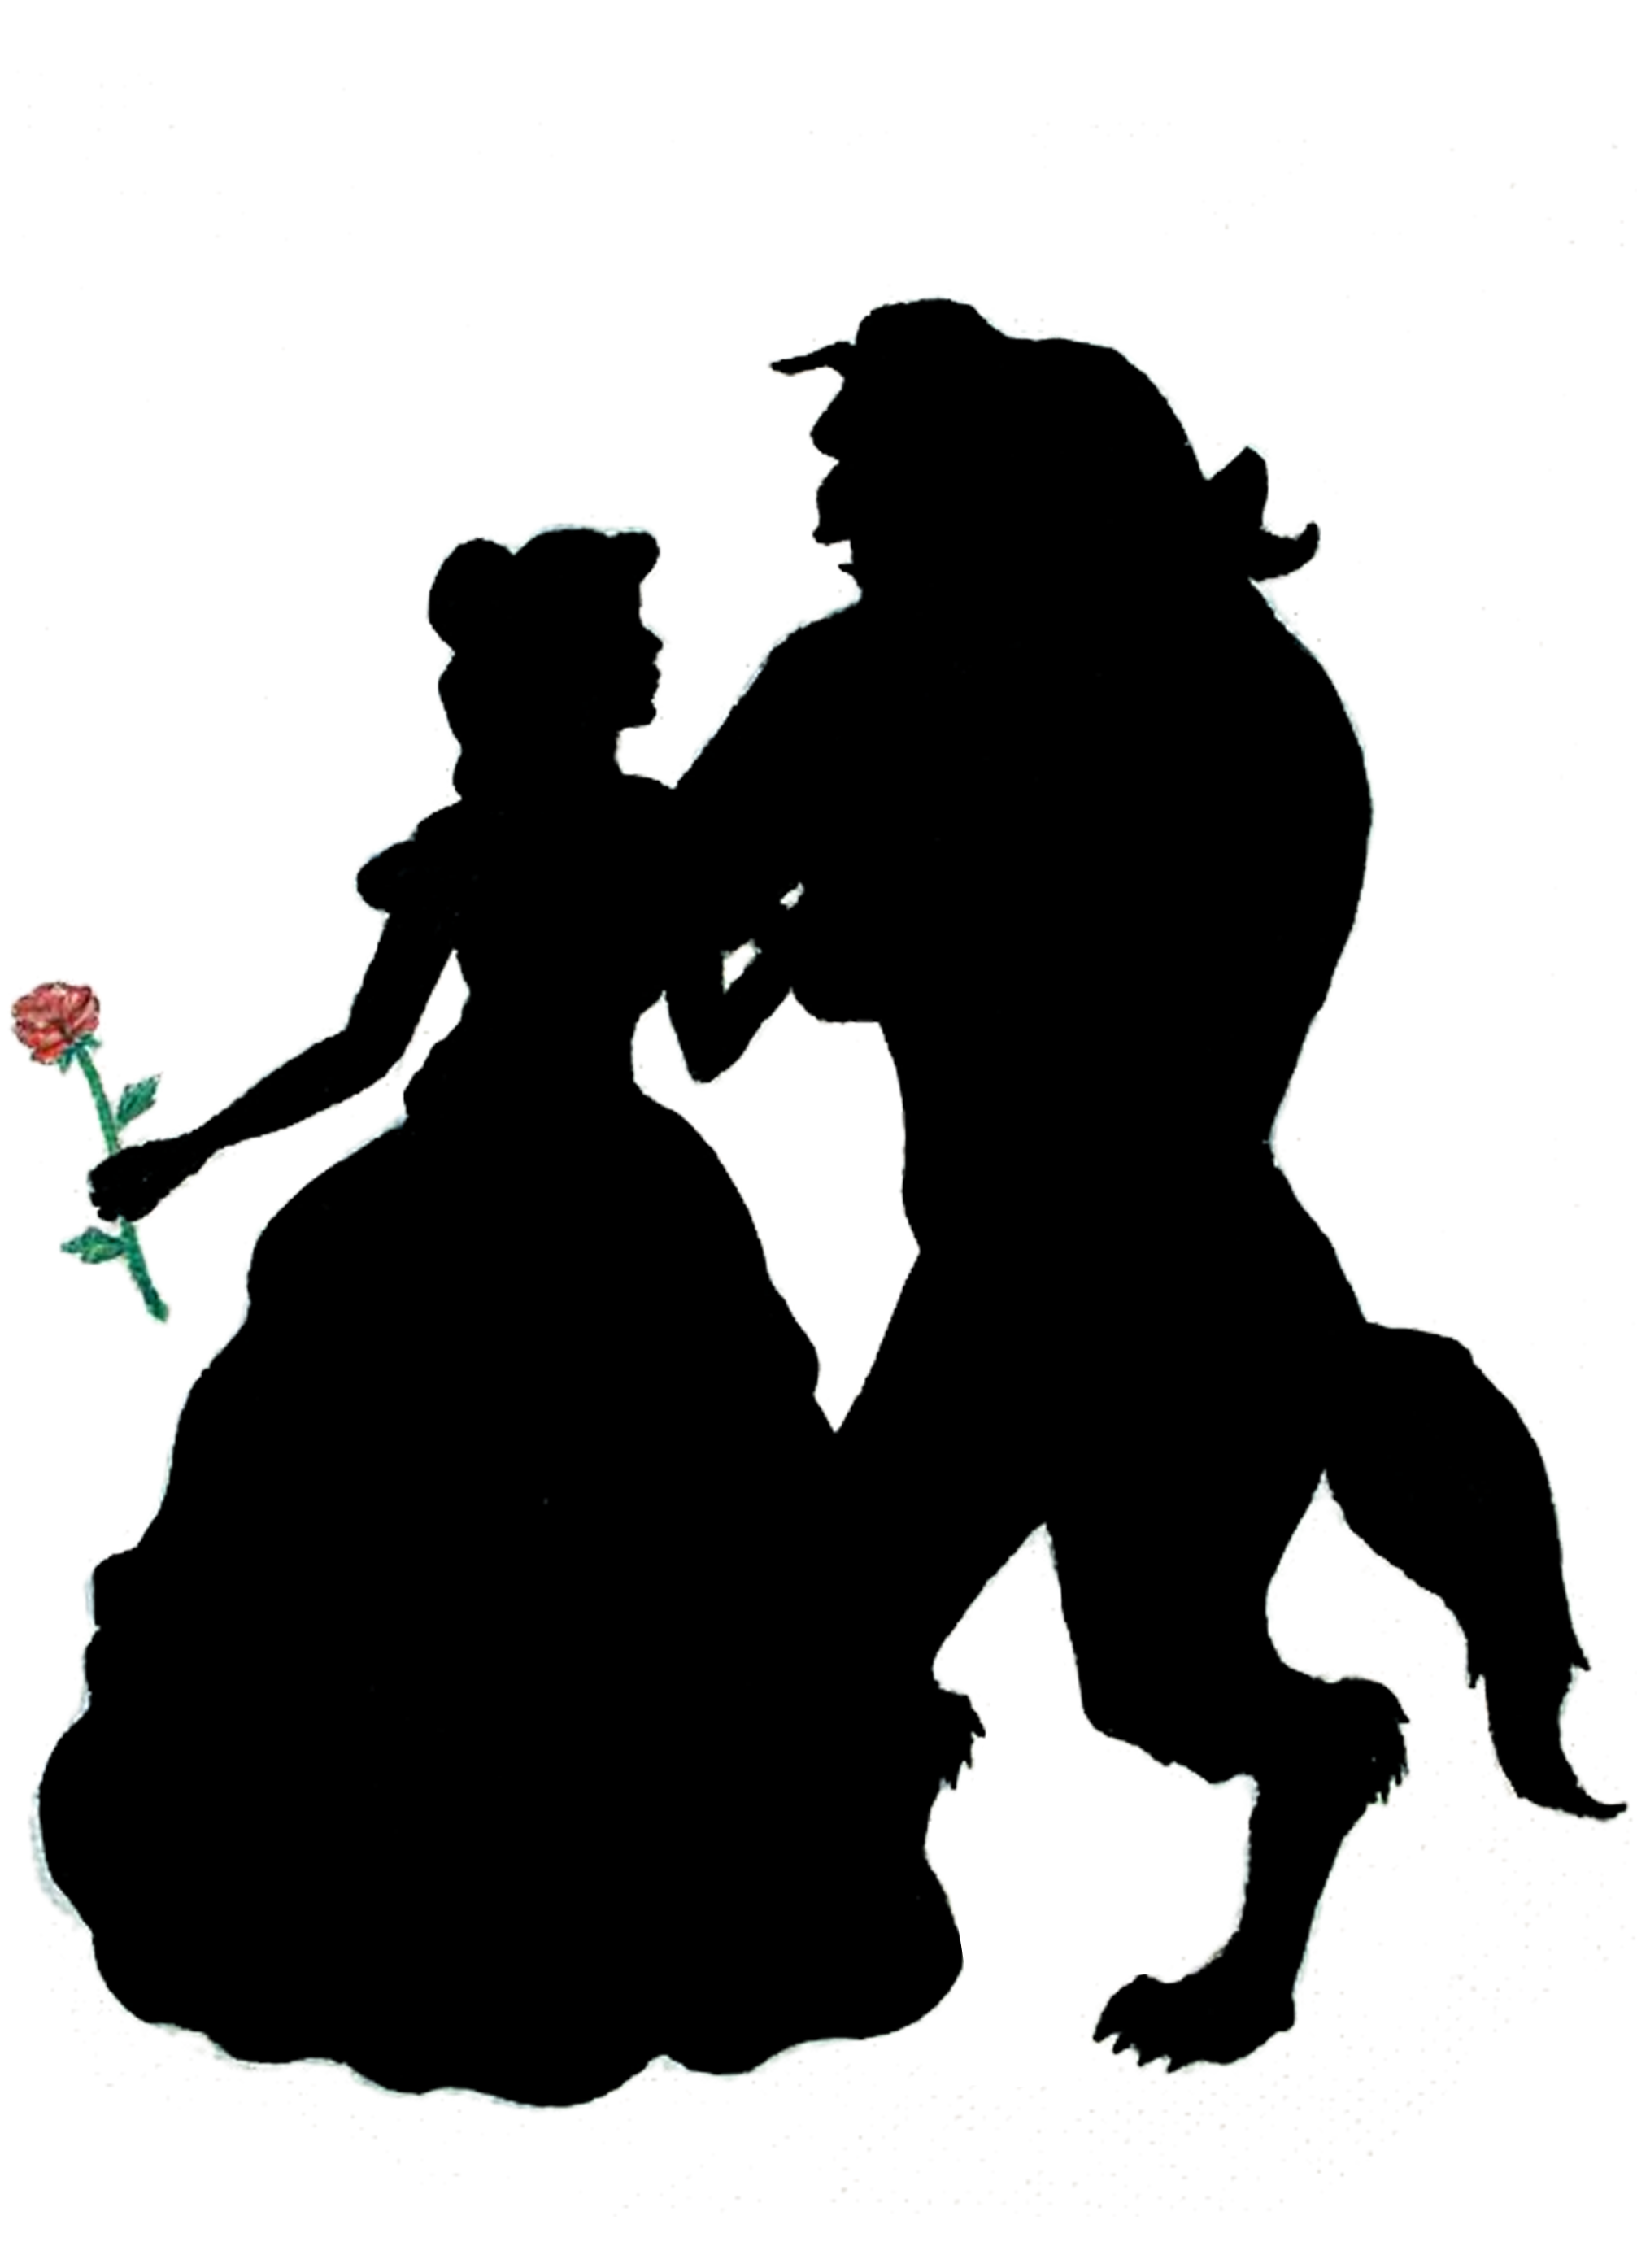 Silhouettes Of Beauty And The Beast Google Search Bela E A Fera